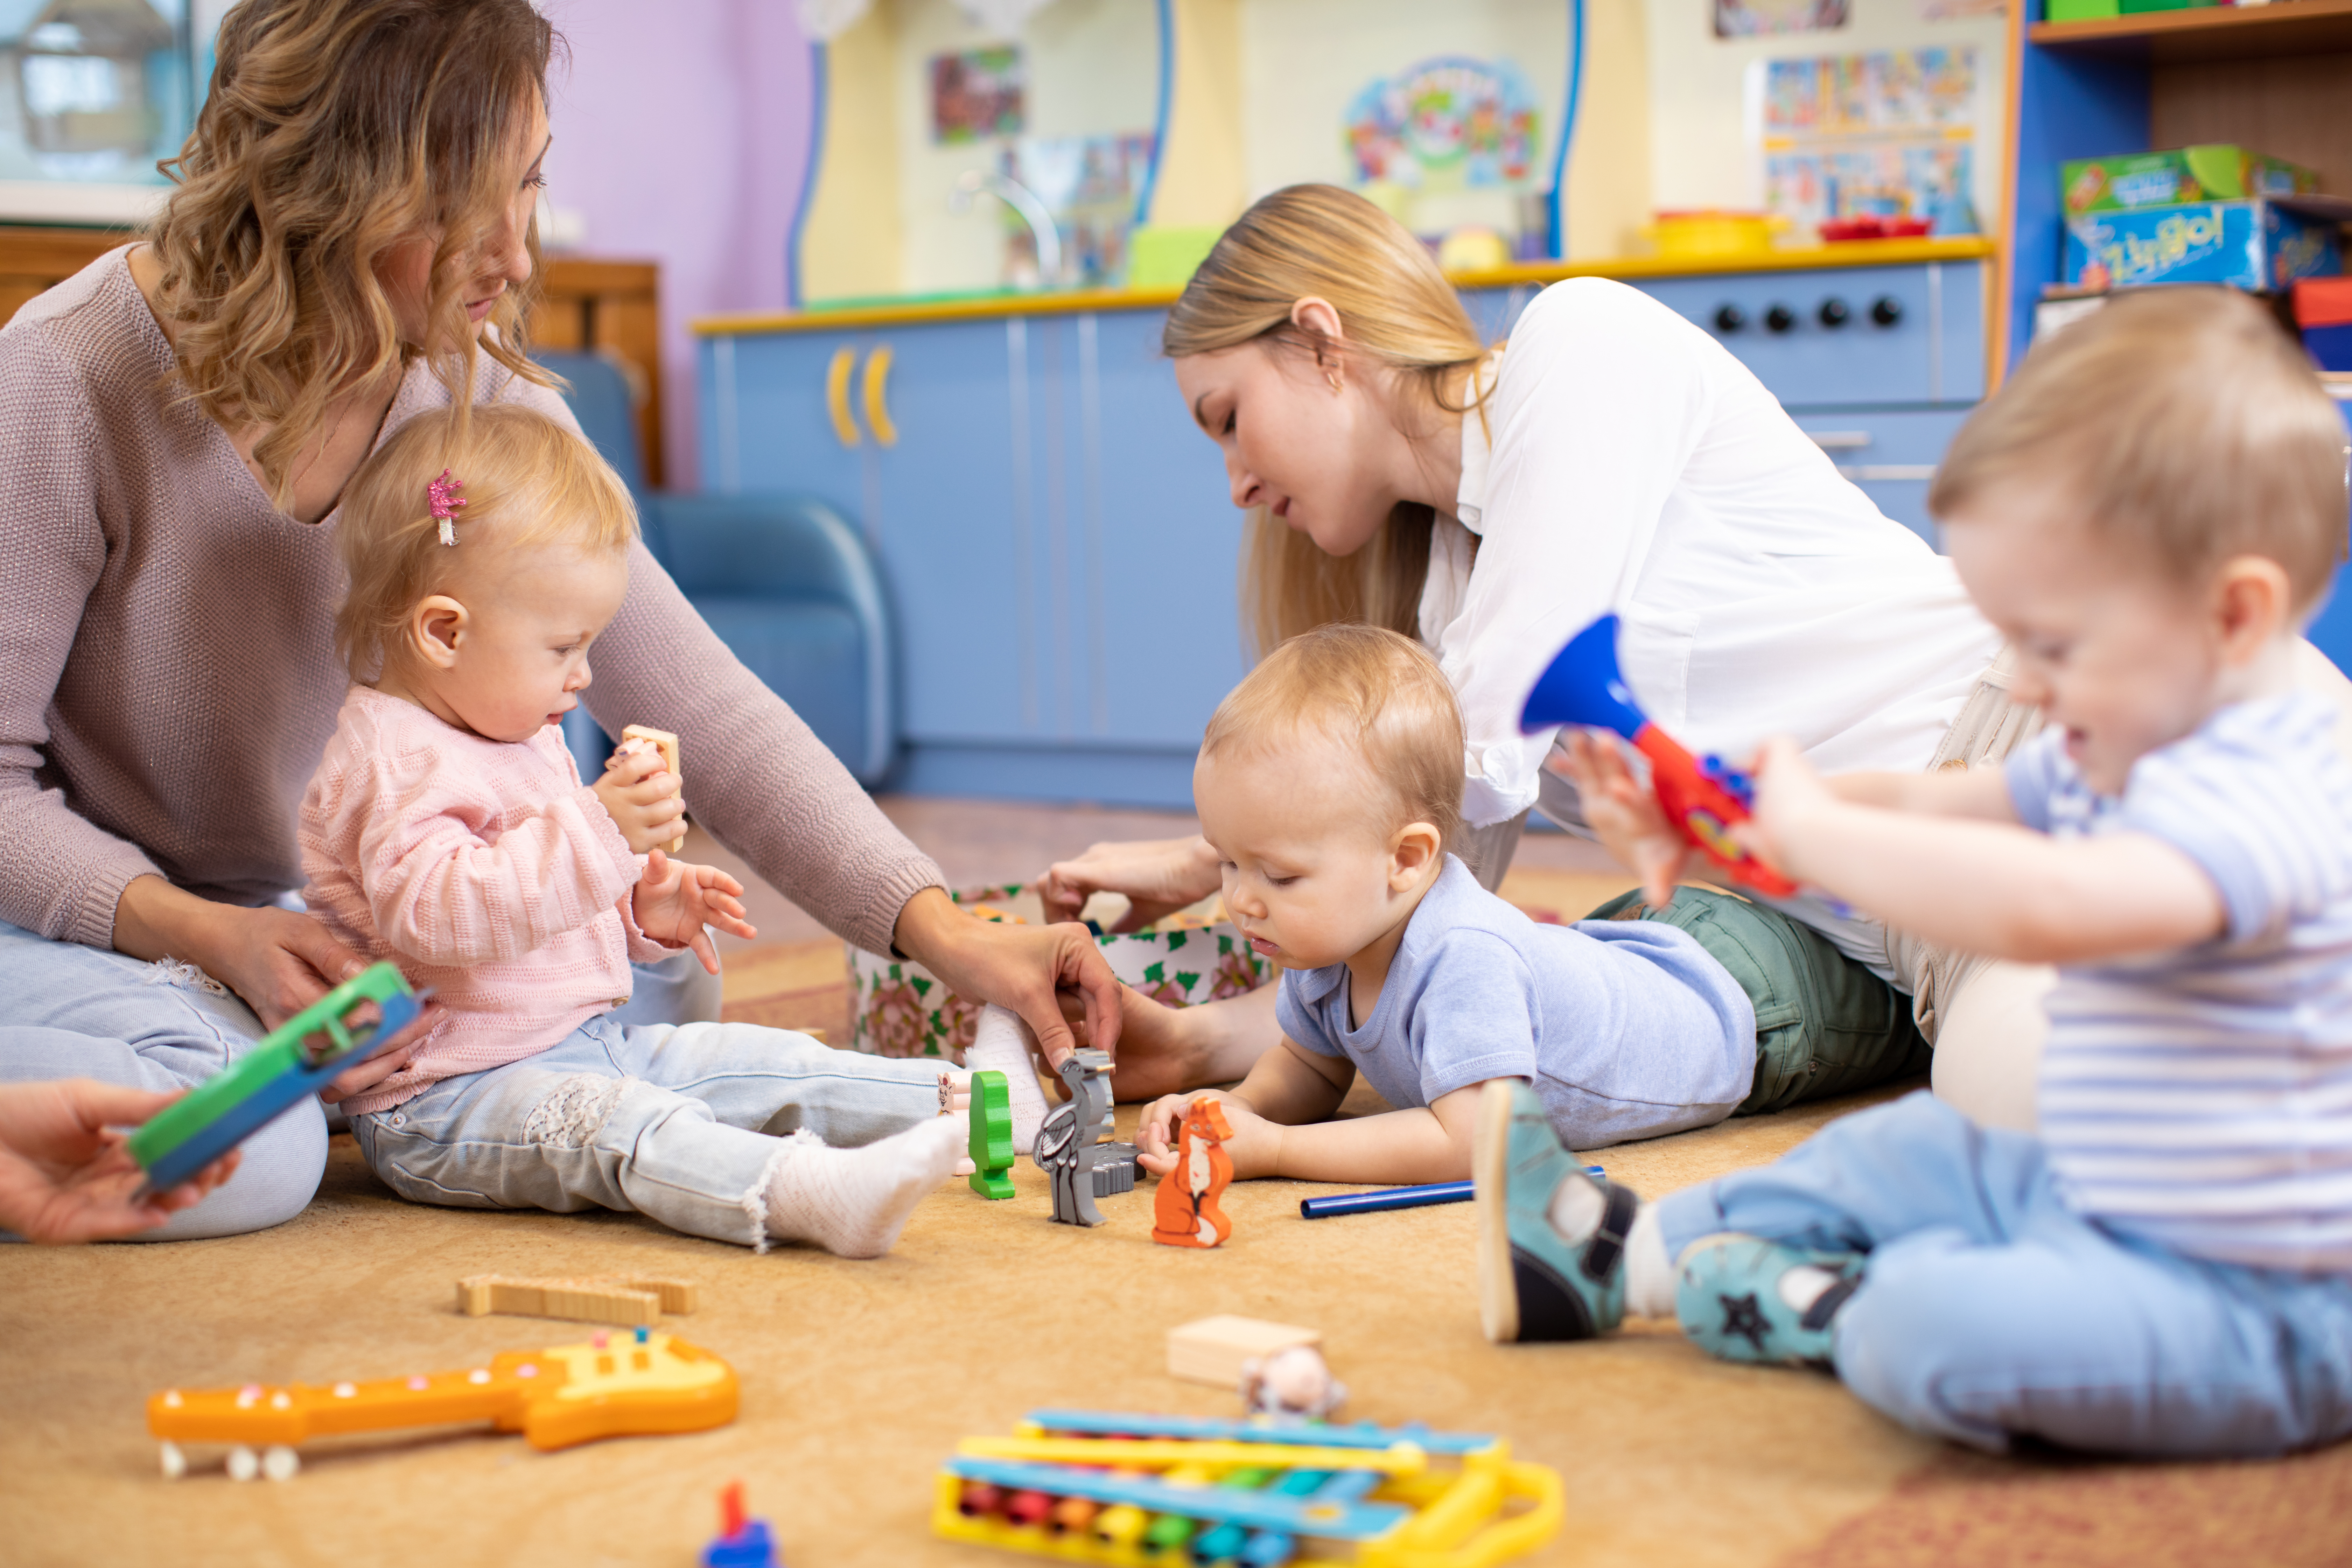 Toddlers playing with their care givers in a nursery at a school